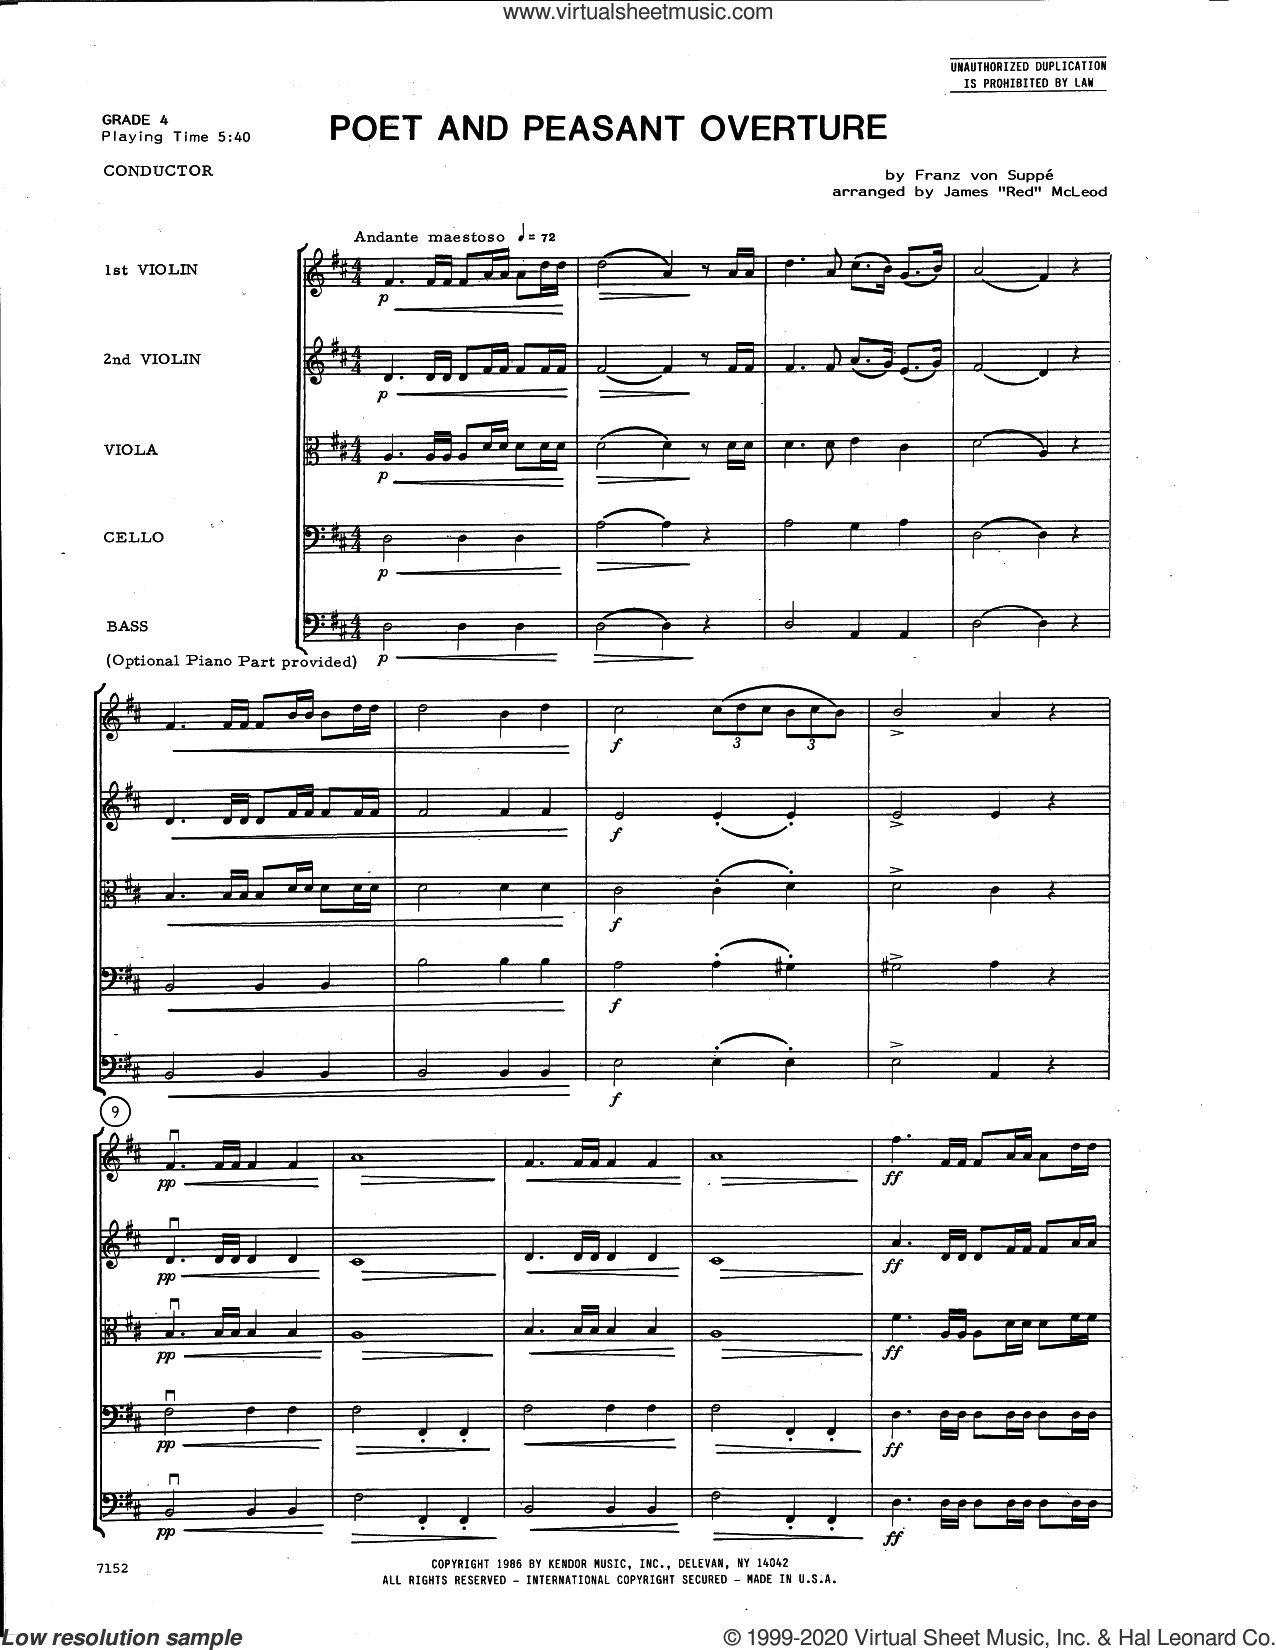 Poet and Peasant Overture (arr. James McLeod) (COMPLETE) sheet music for orchestra by James 'Red' McLeod and Franz Von Suppe, classical score, intermediate skill level